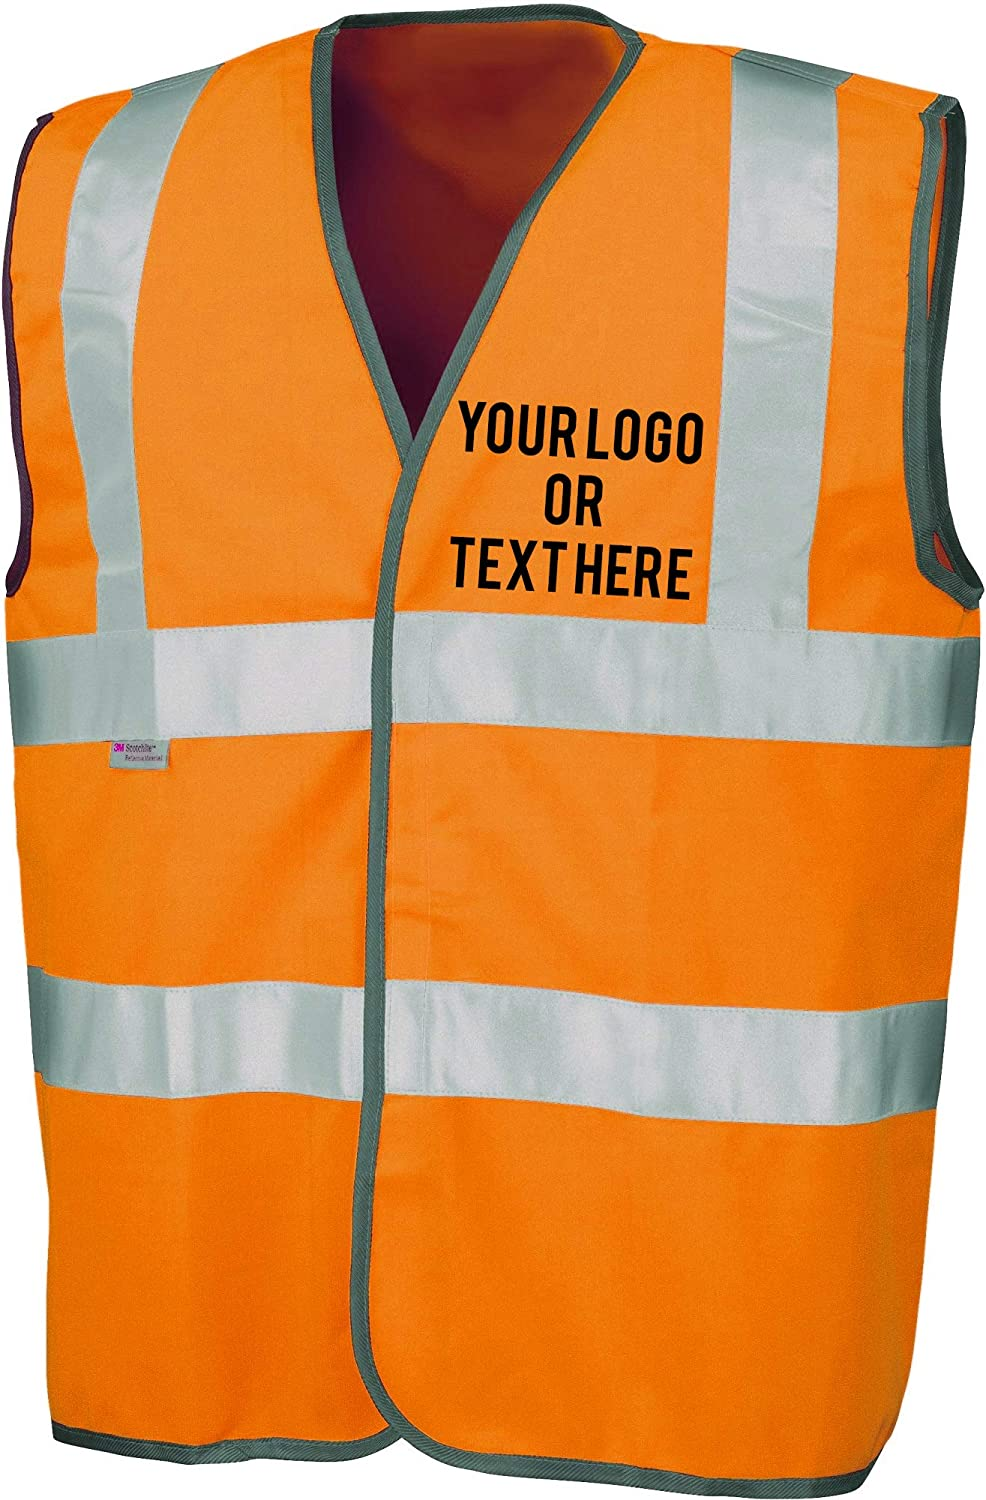 Colour=Orange The World Of Wall Art Personalised Printed High Visibility High-Viz Safety Waistcoat Vest Size=2X Large Hi-Vis